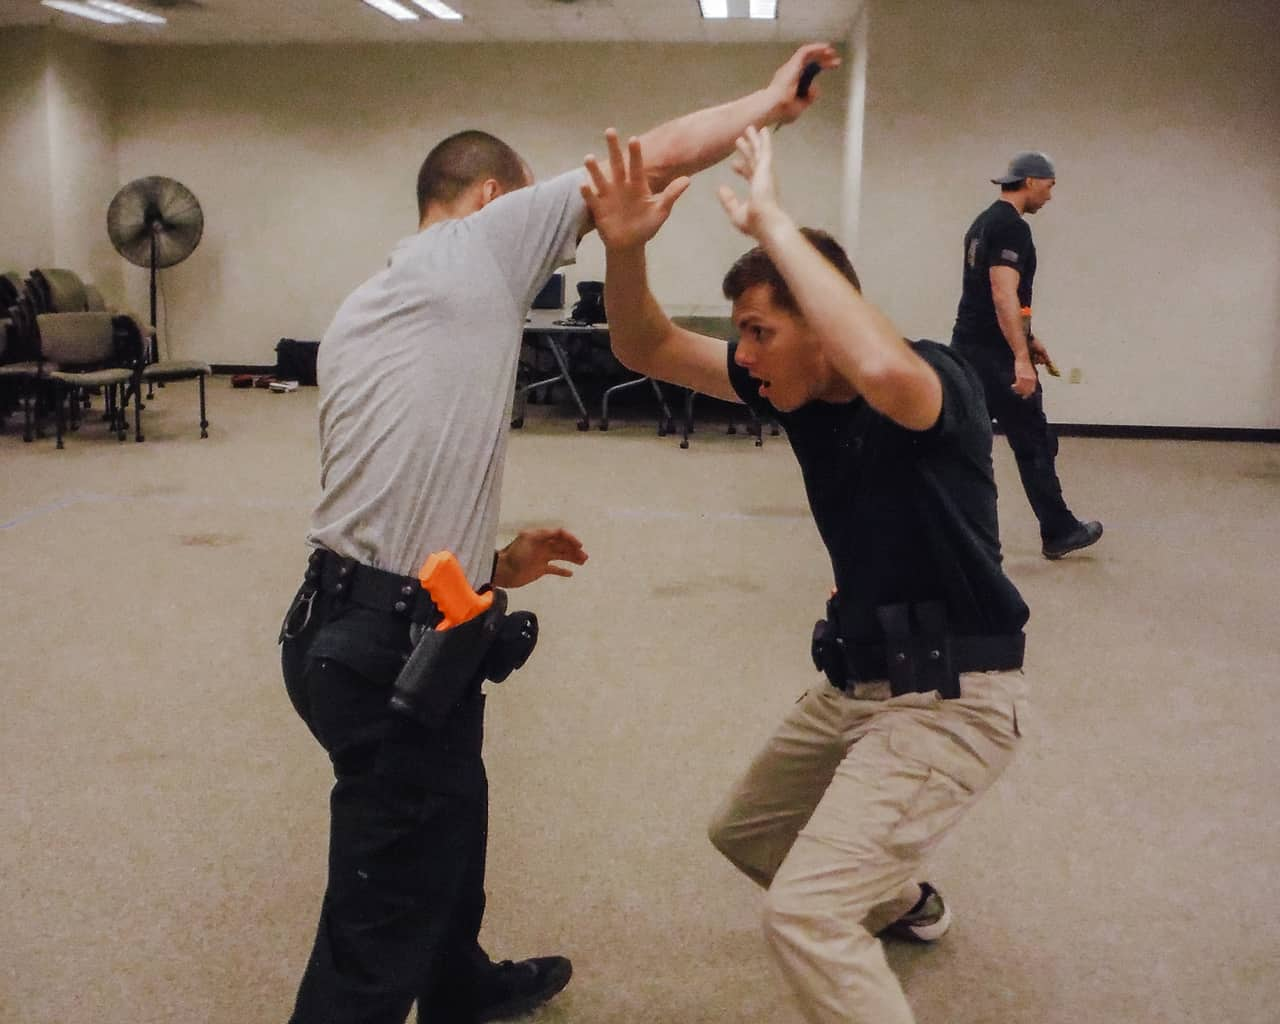 prevailing-against-edged-weapons-8